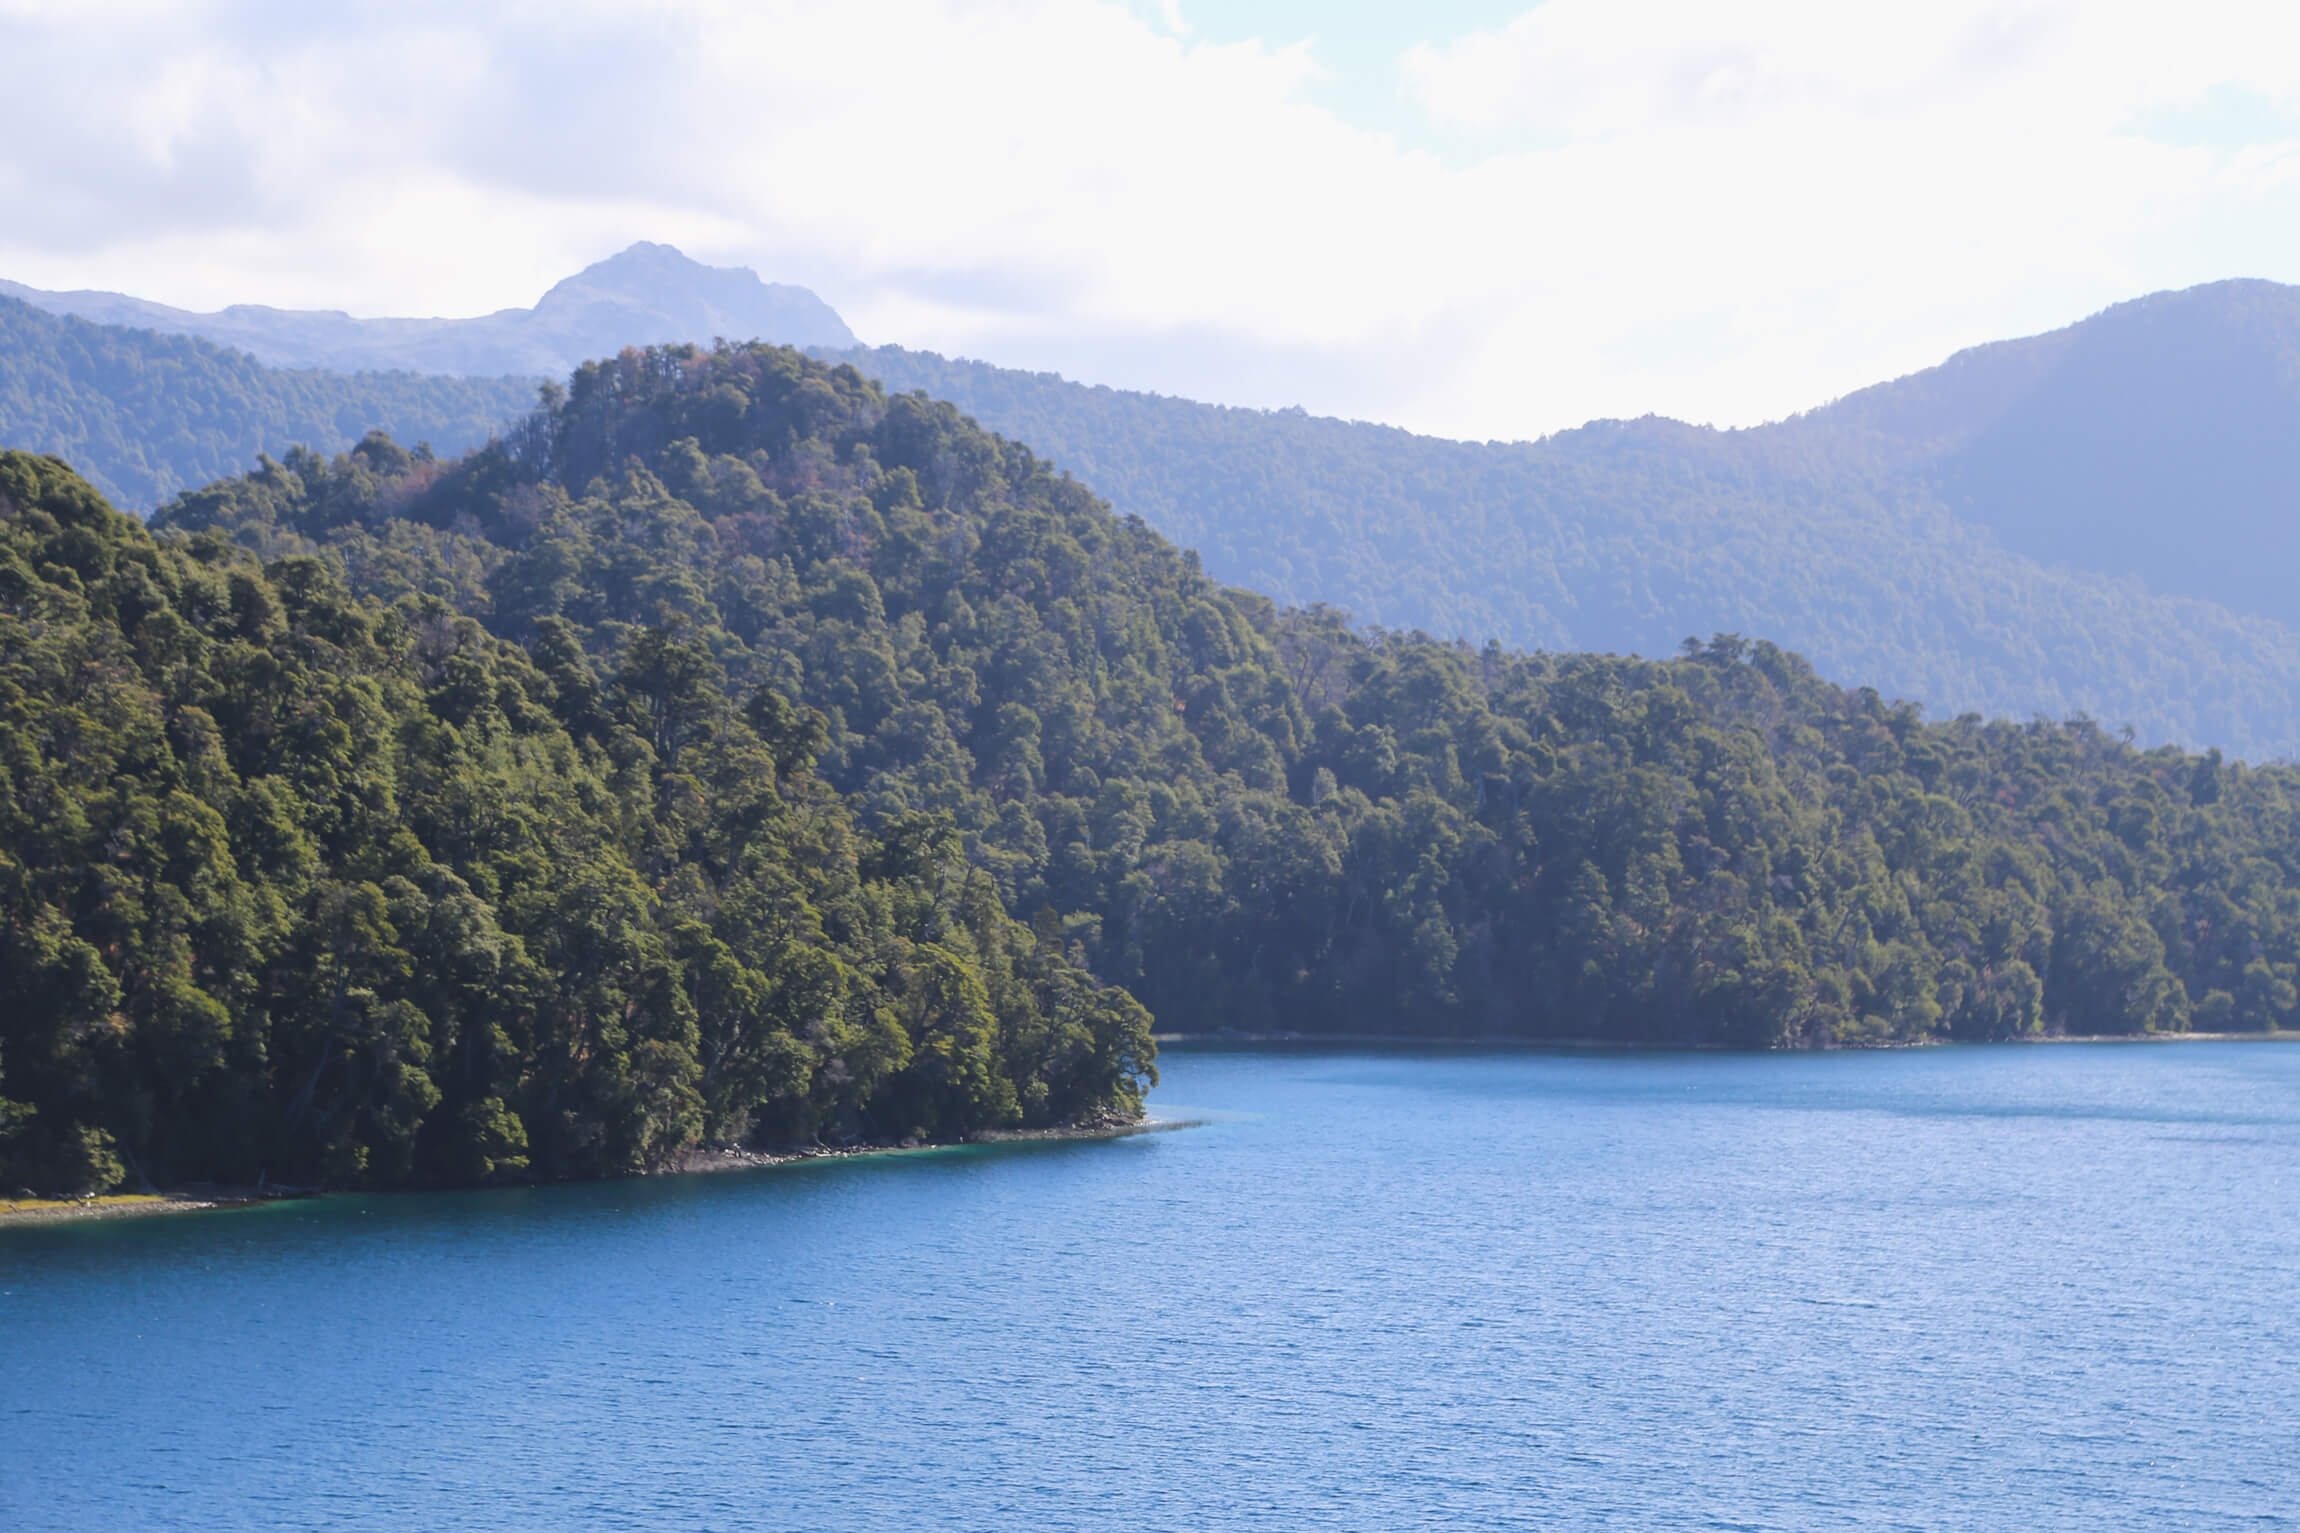 A lake surrounded by a mountainous forest on the Ruta de los 7 Lagos in Argentina